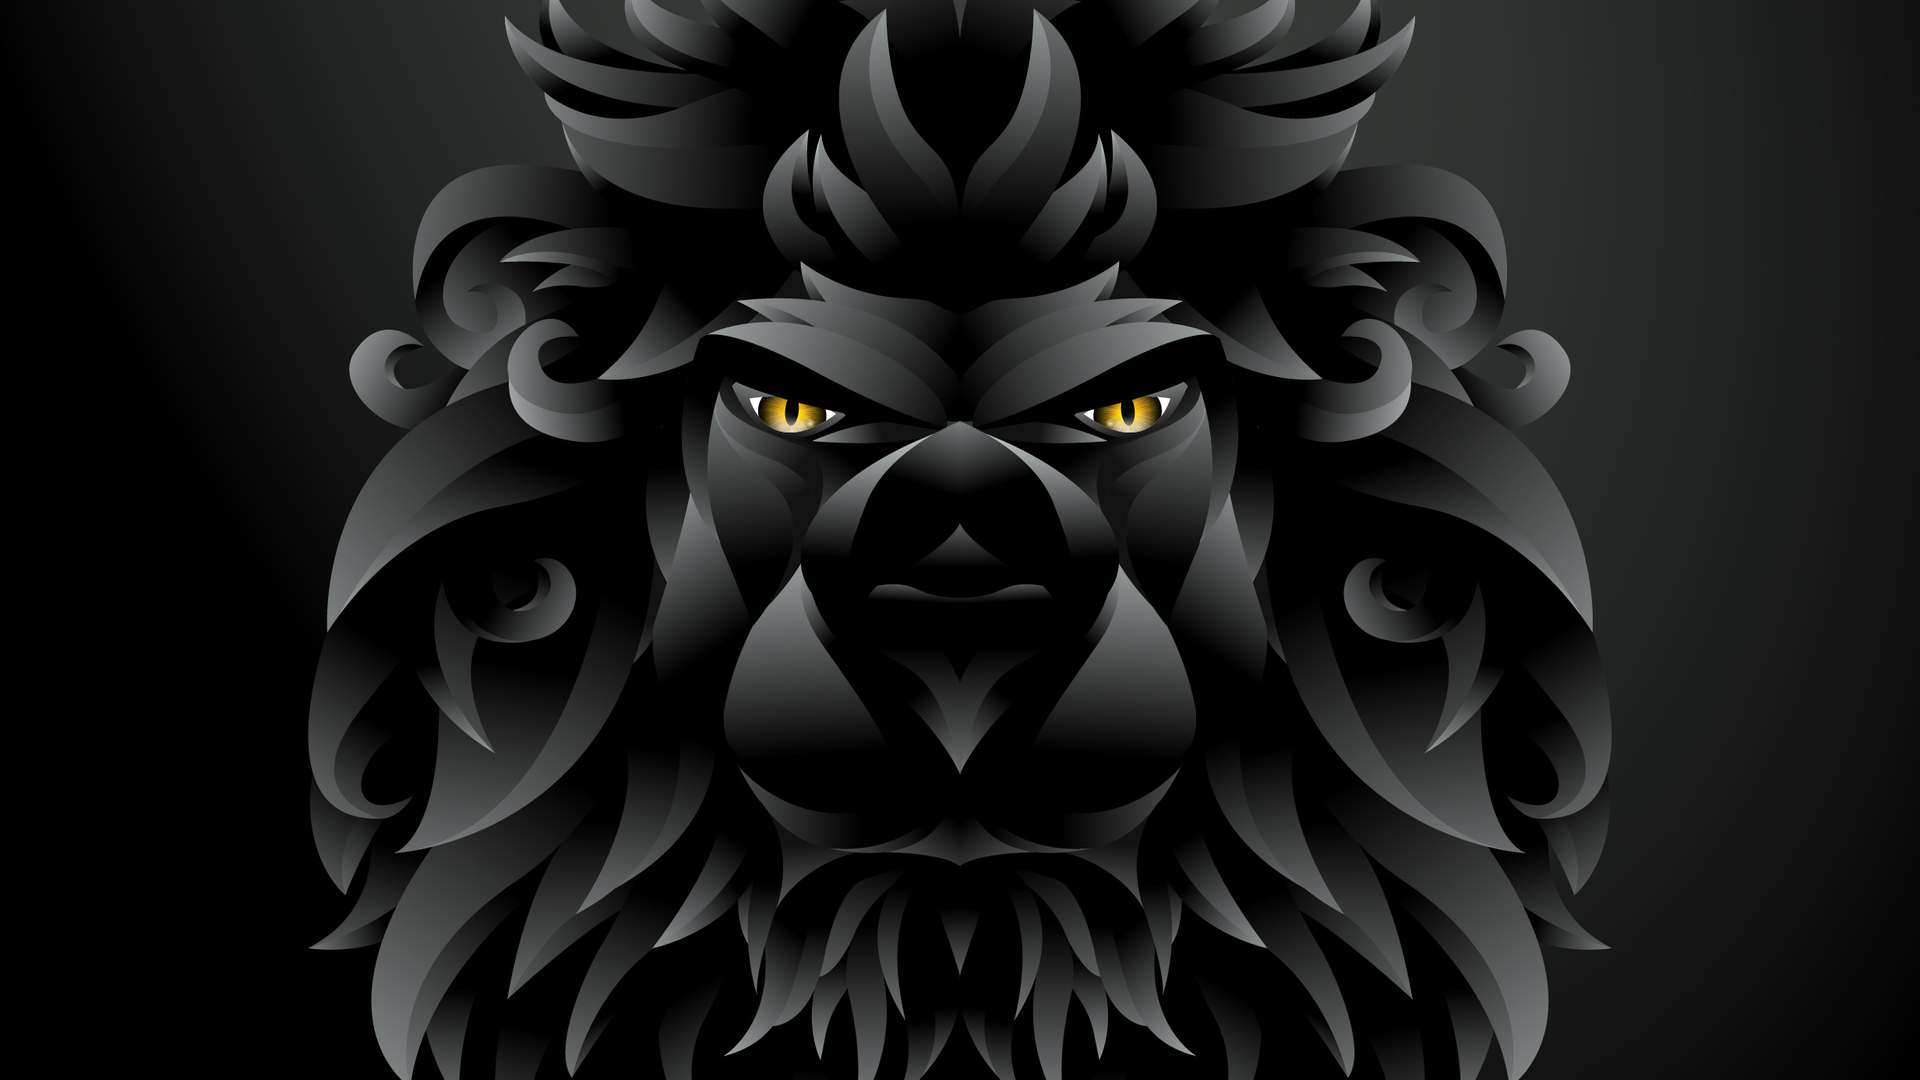 1920x1080 Dark Black Lion Illustration Laptop Full Hd 1080p Hd 4k Wallpapers Images Backgrounds Photos And Pictures